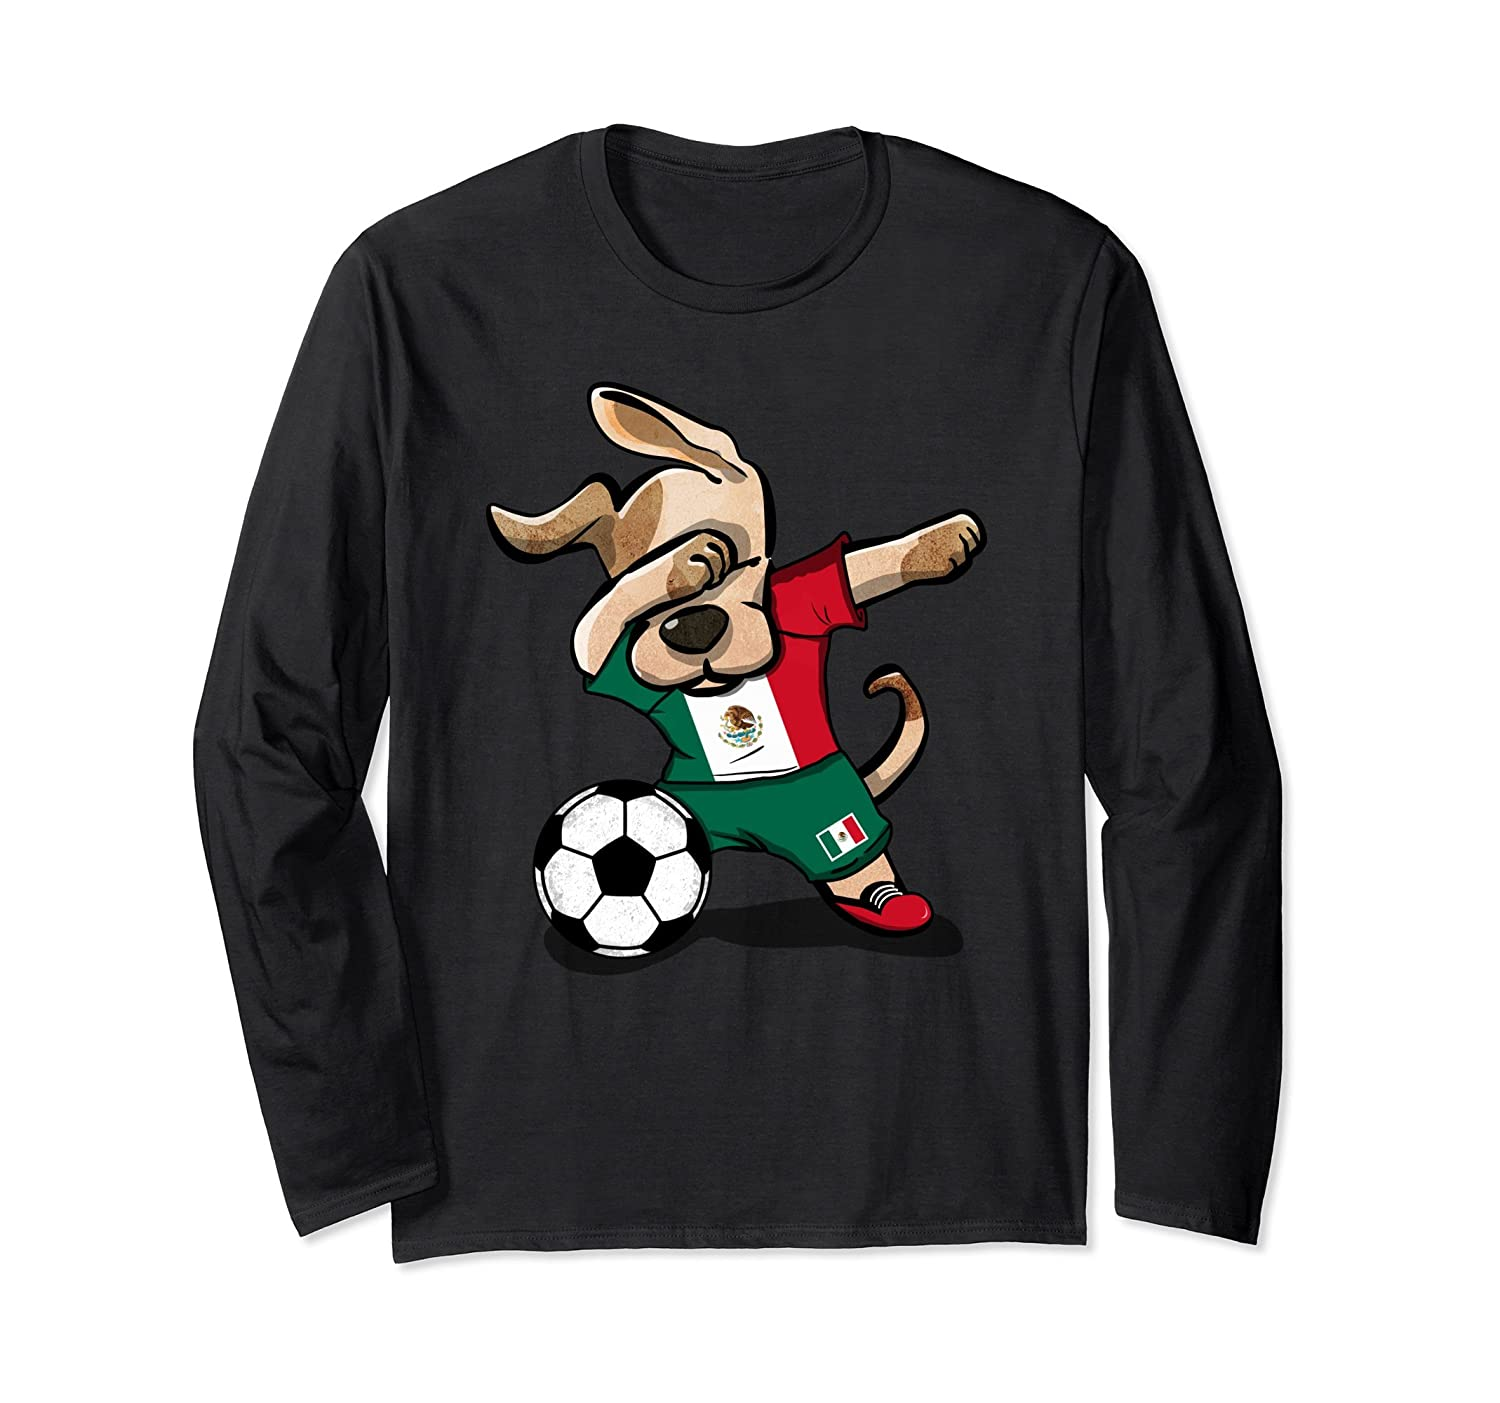 c358f4108ea Dog Dabbing Soccer Mexico Jersey Shirt Mexican Football-anz ⋆ Anztshirt